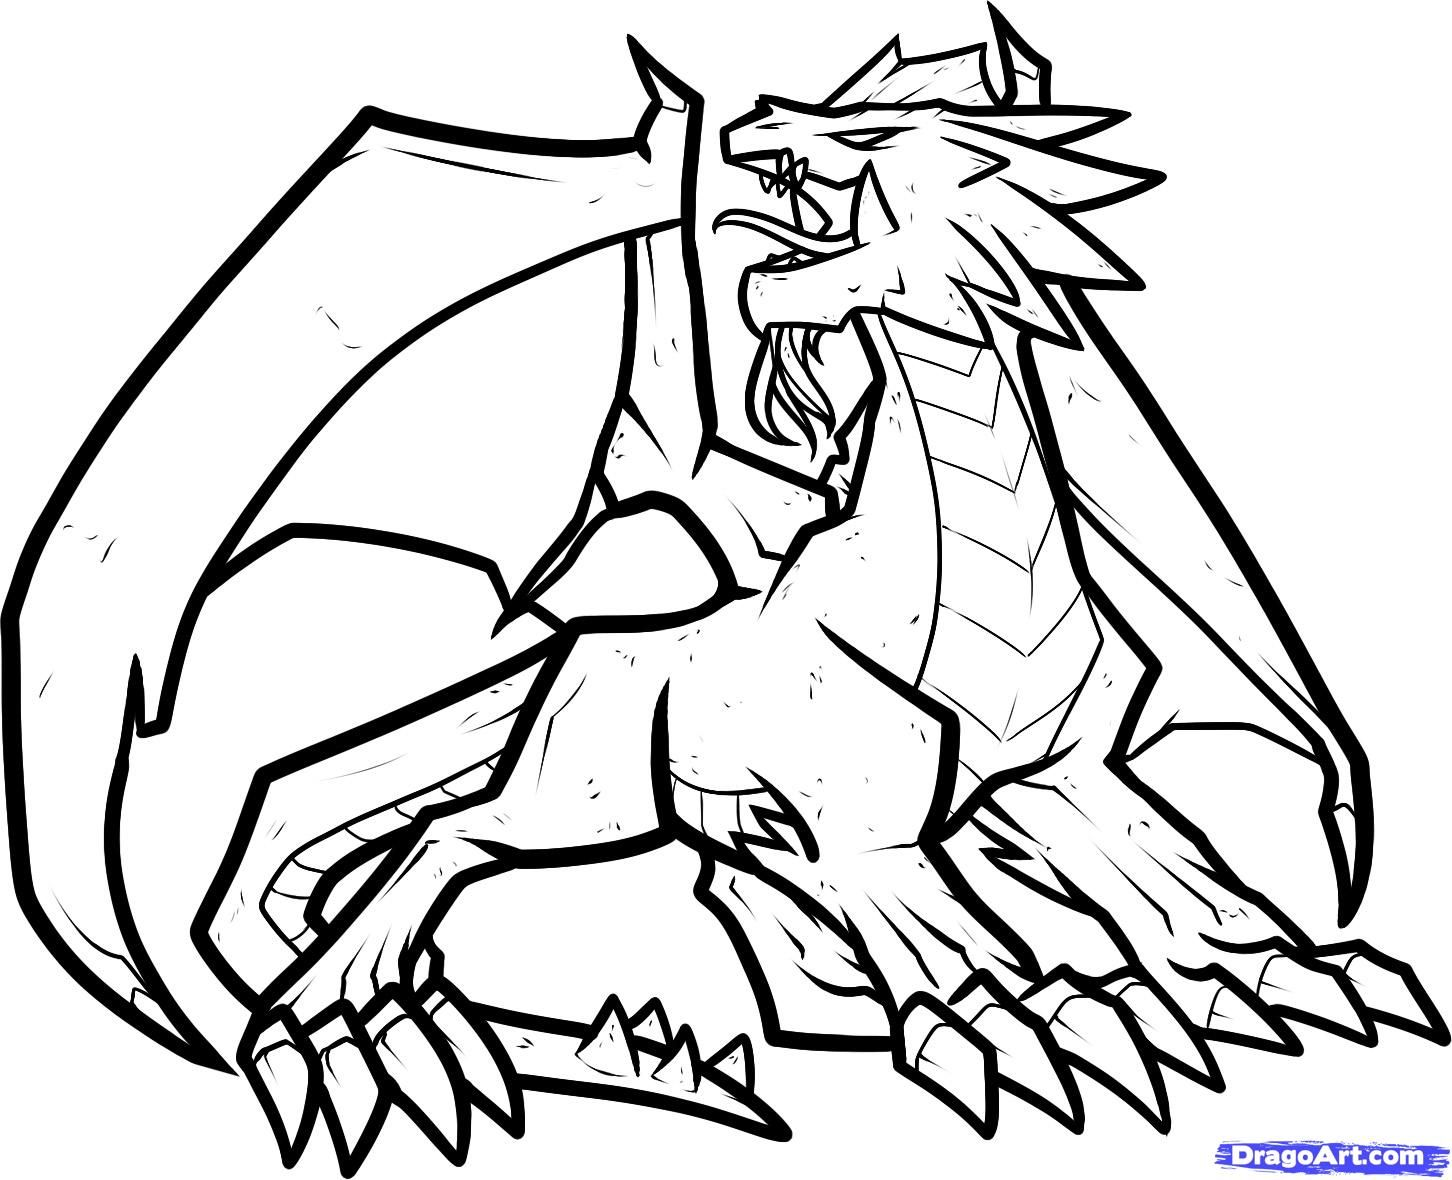 - How To Draw A Fire Dragon, Fire Dragon, Red Dragon By Dawn